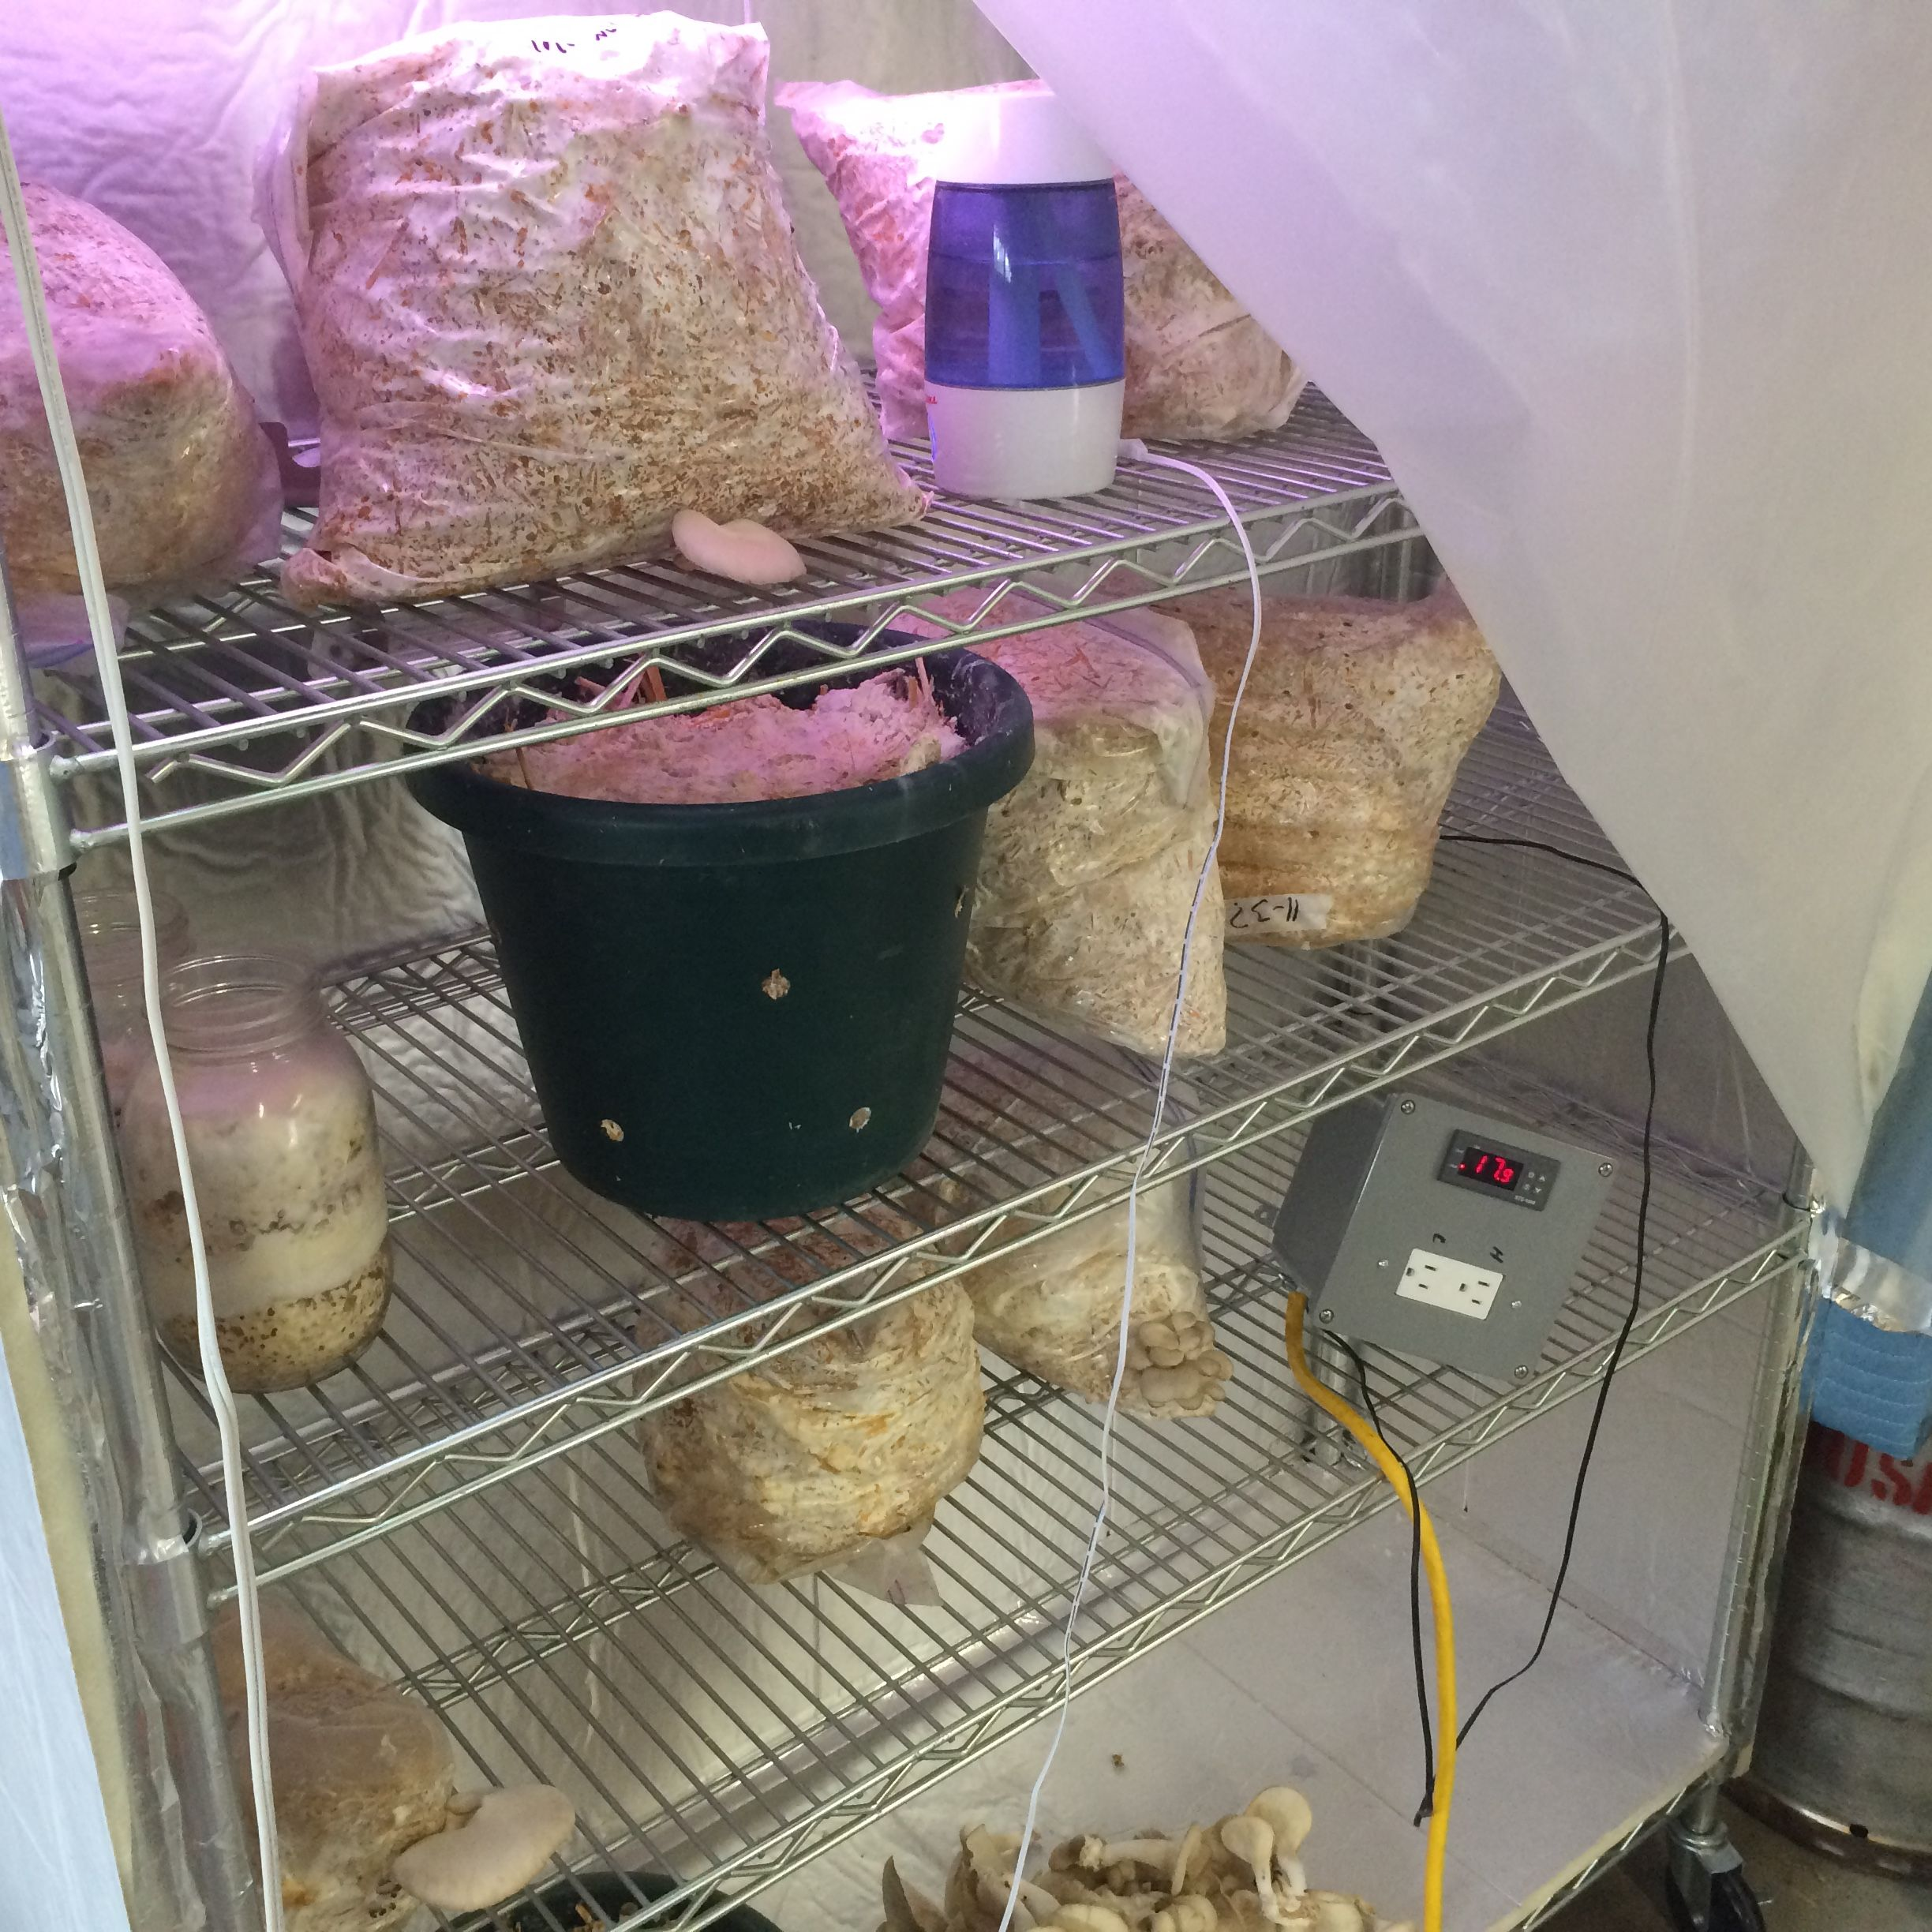 home made, low cost growing chamber  note the humidifier and